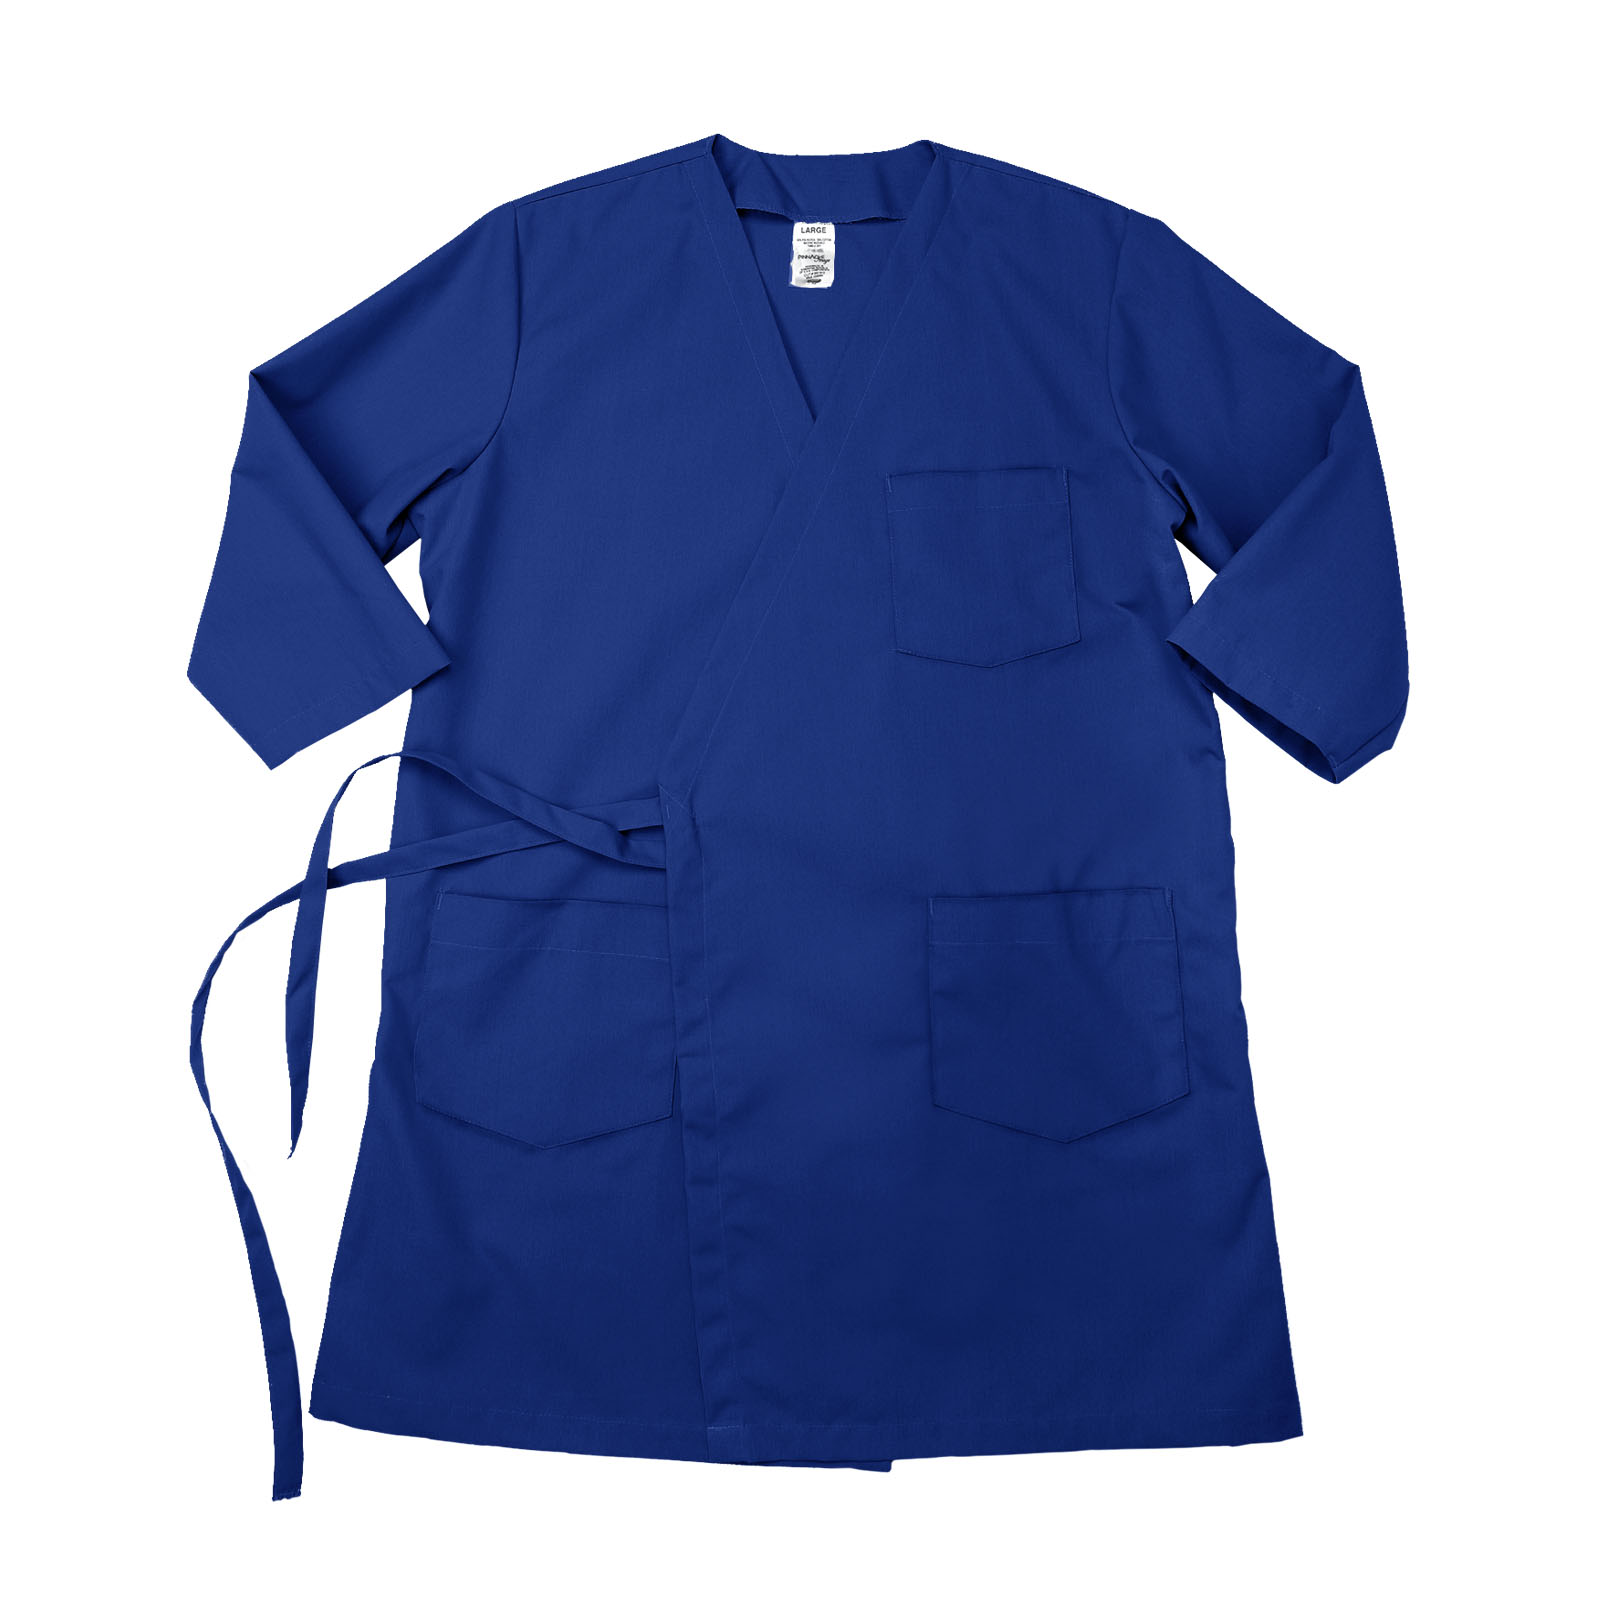 WR17/WRDC Pinnacle Textile Wraparound 3/4 Sleeve Smock - Royal Blue